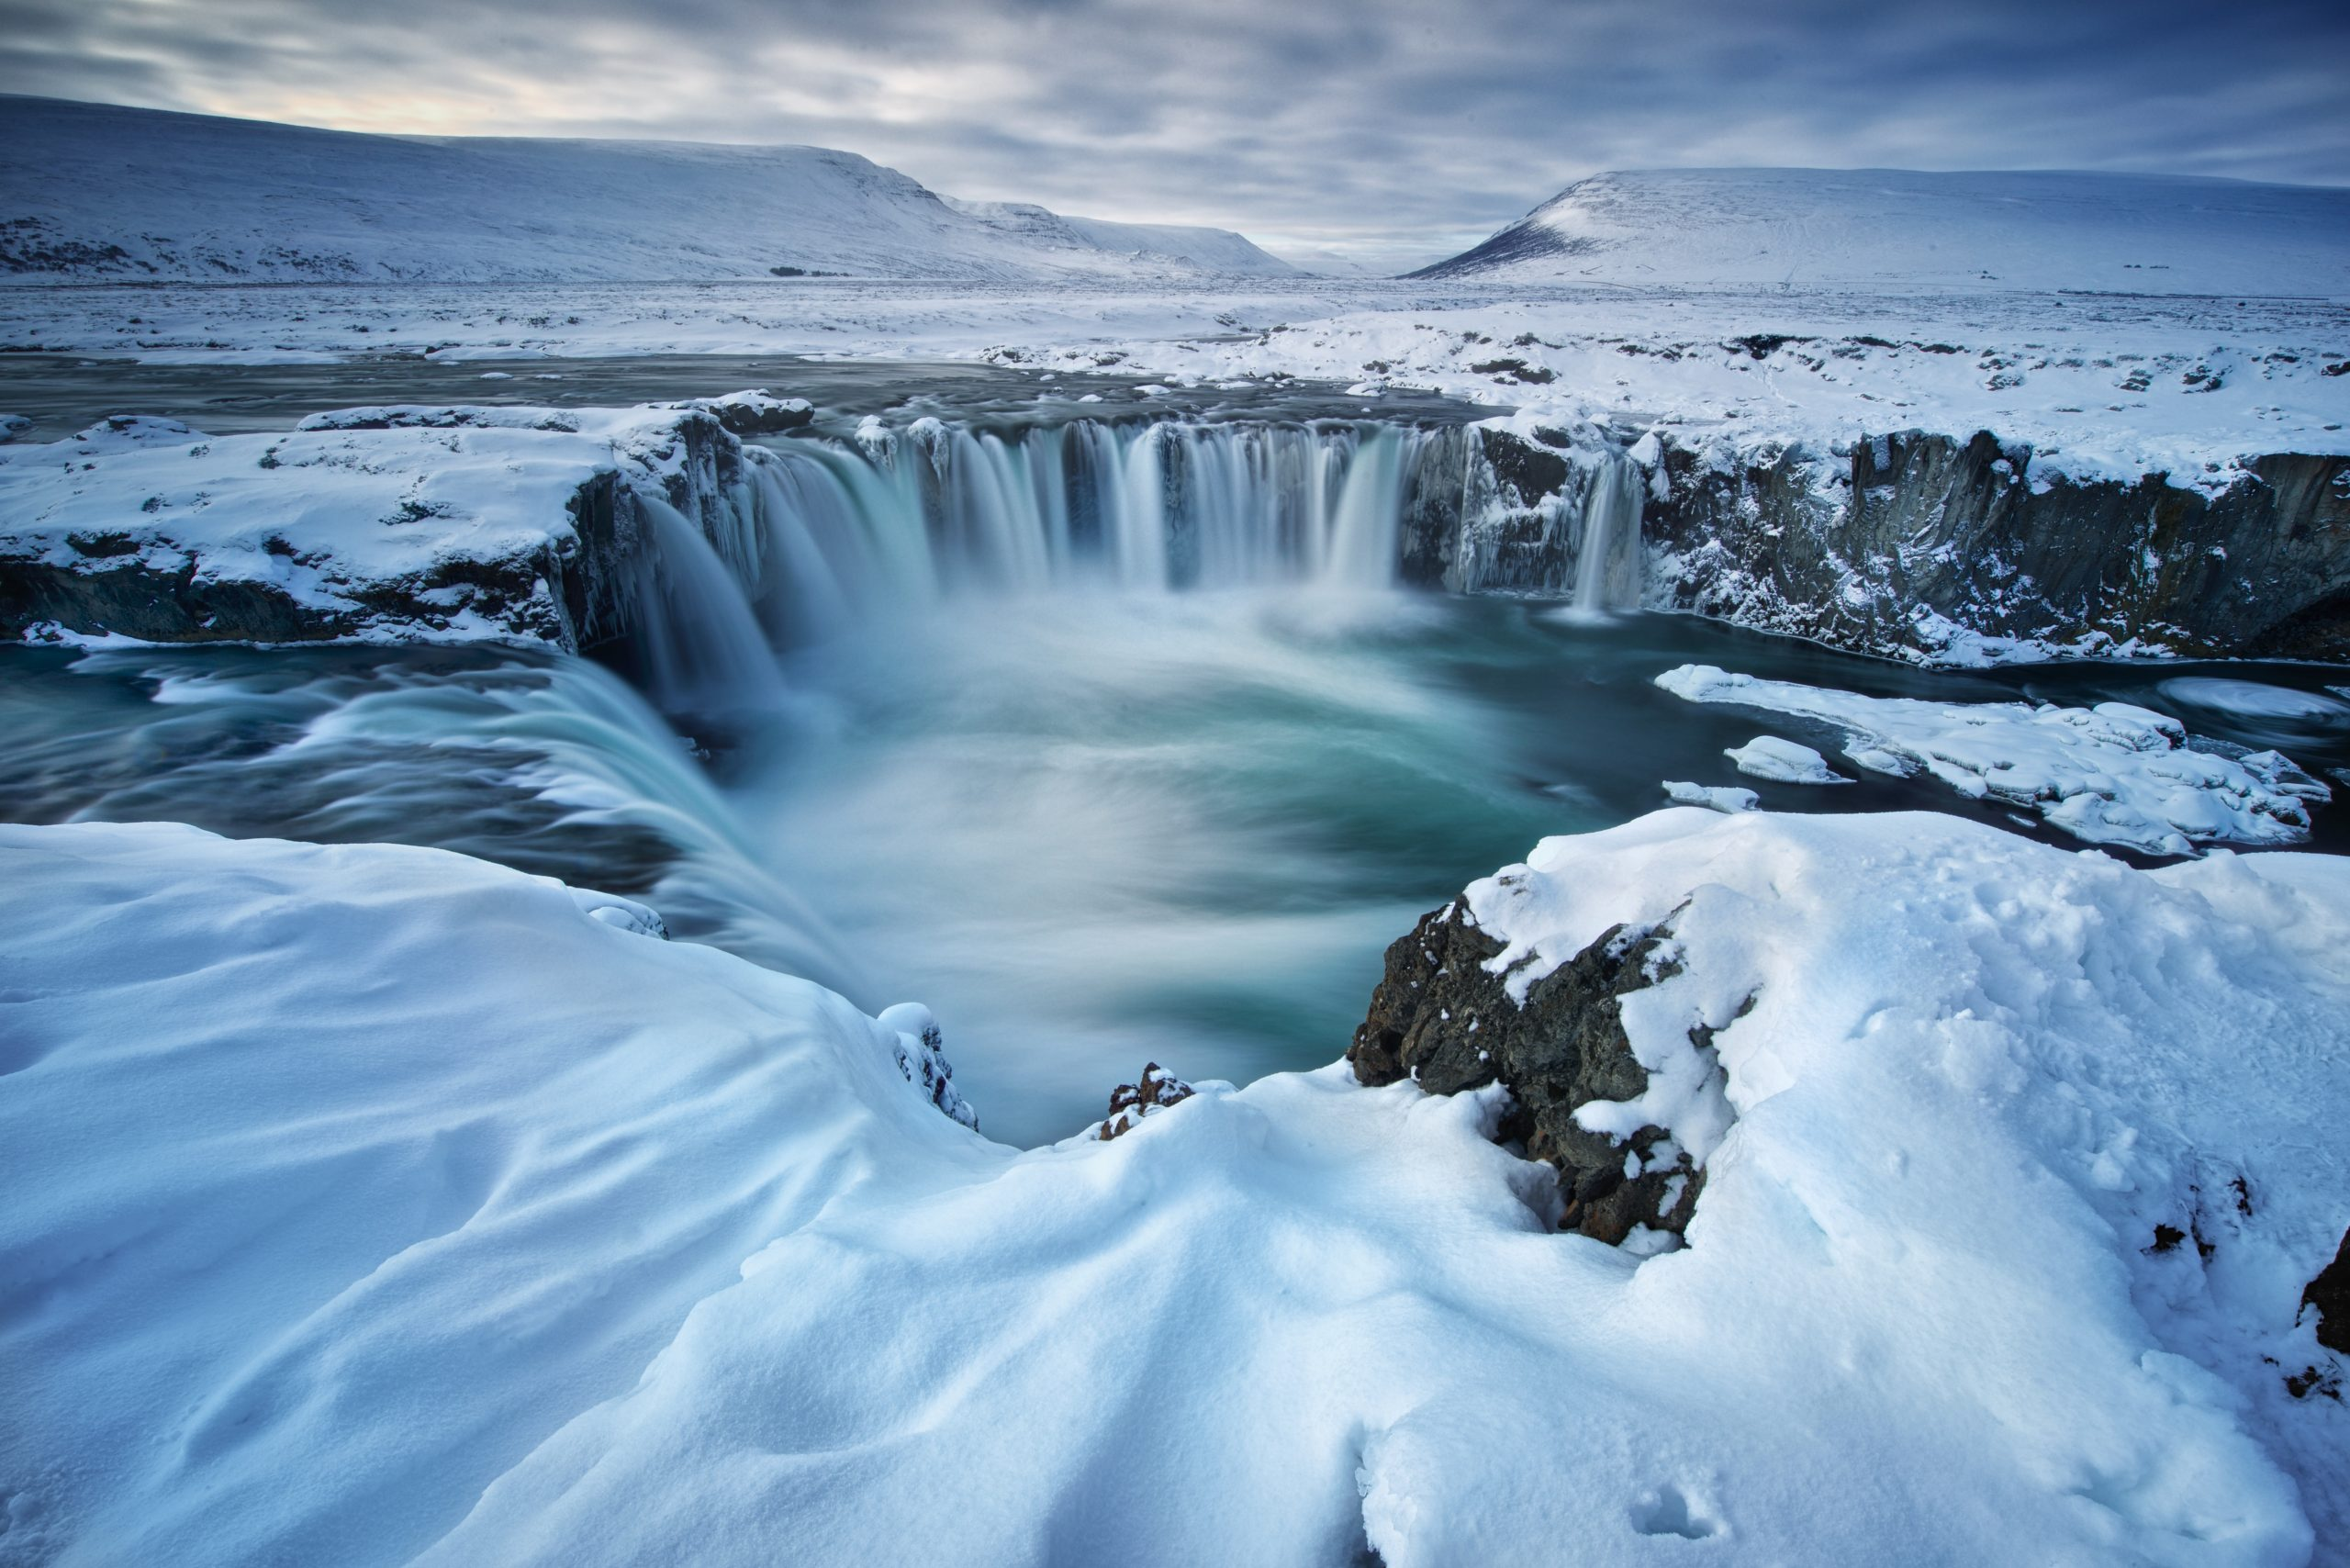 10 amazing things you didn't know about Iceland